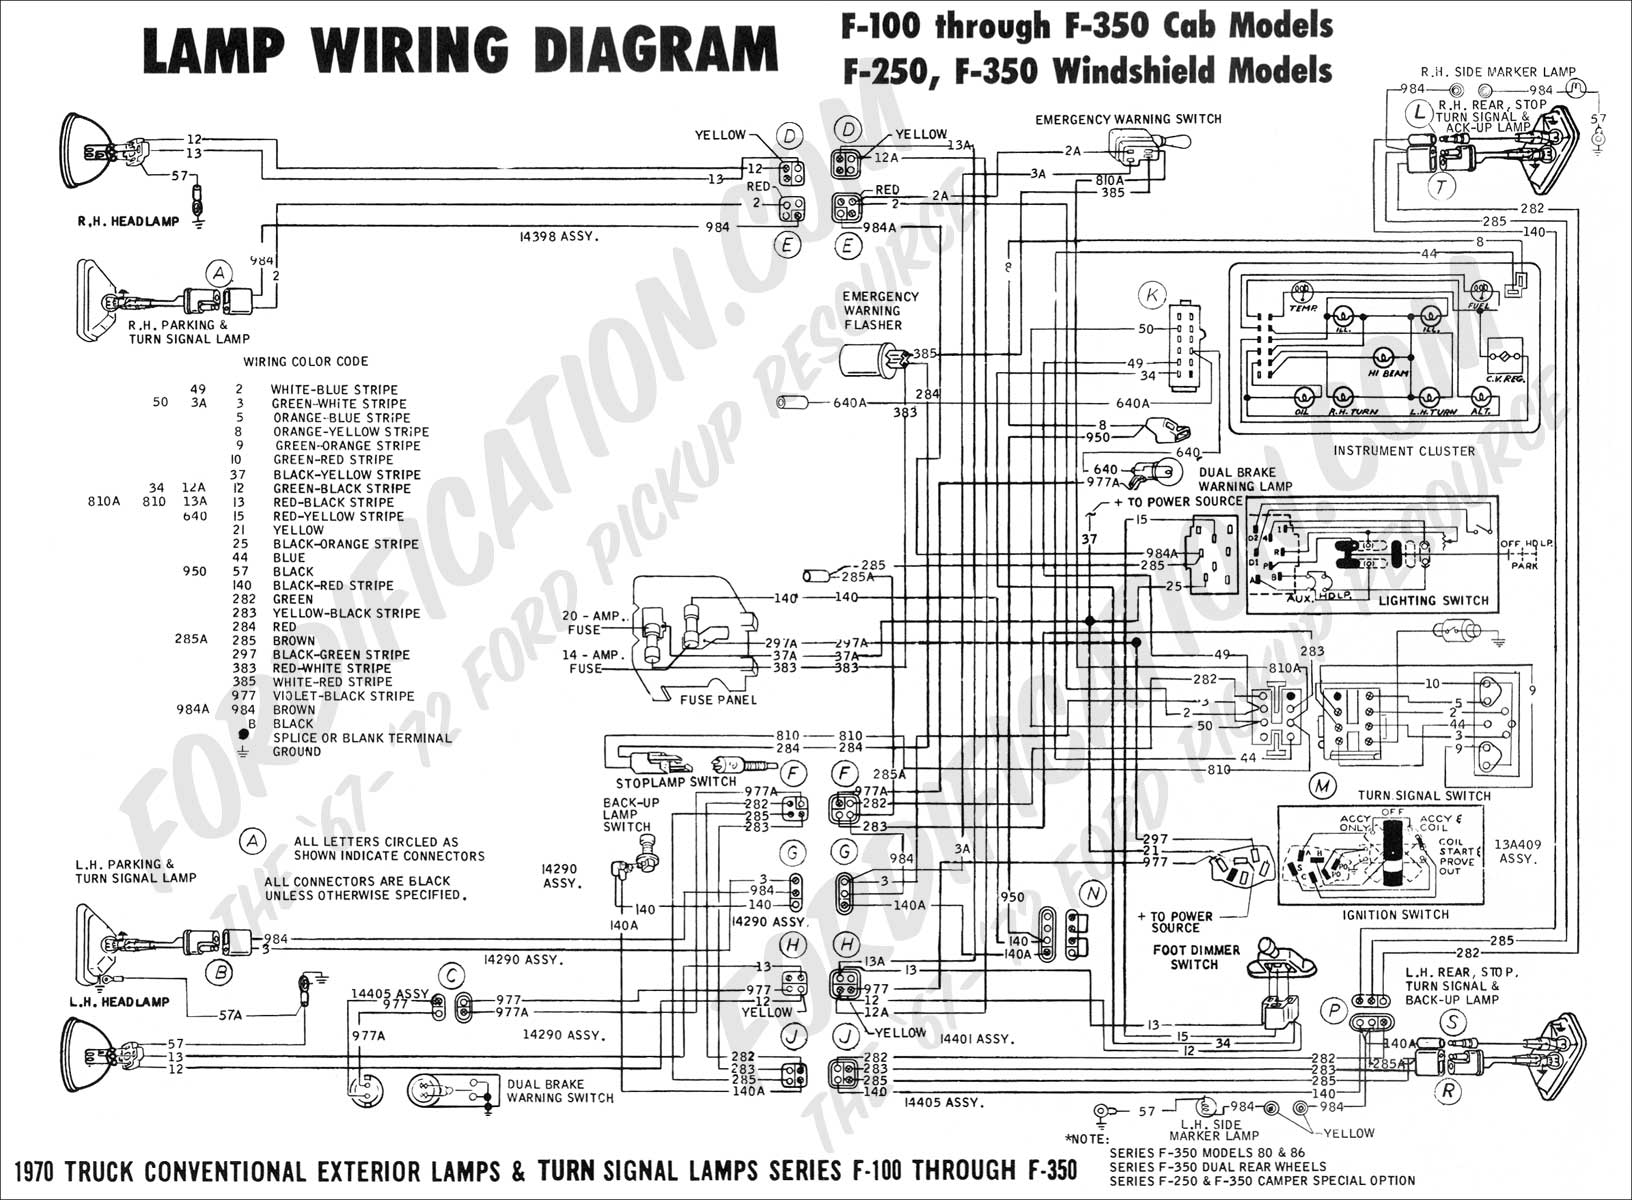 wiring diagram_70ext lights01 1993 ford f250 wiring diagram 1993 ford f 250 engine \u2022 free wiring ford truck wiring schematics at bayanpartner.co